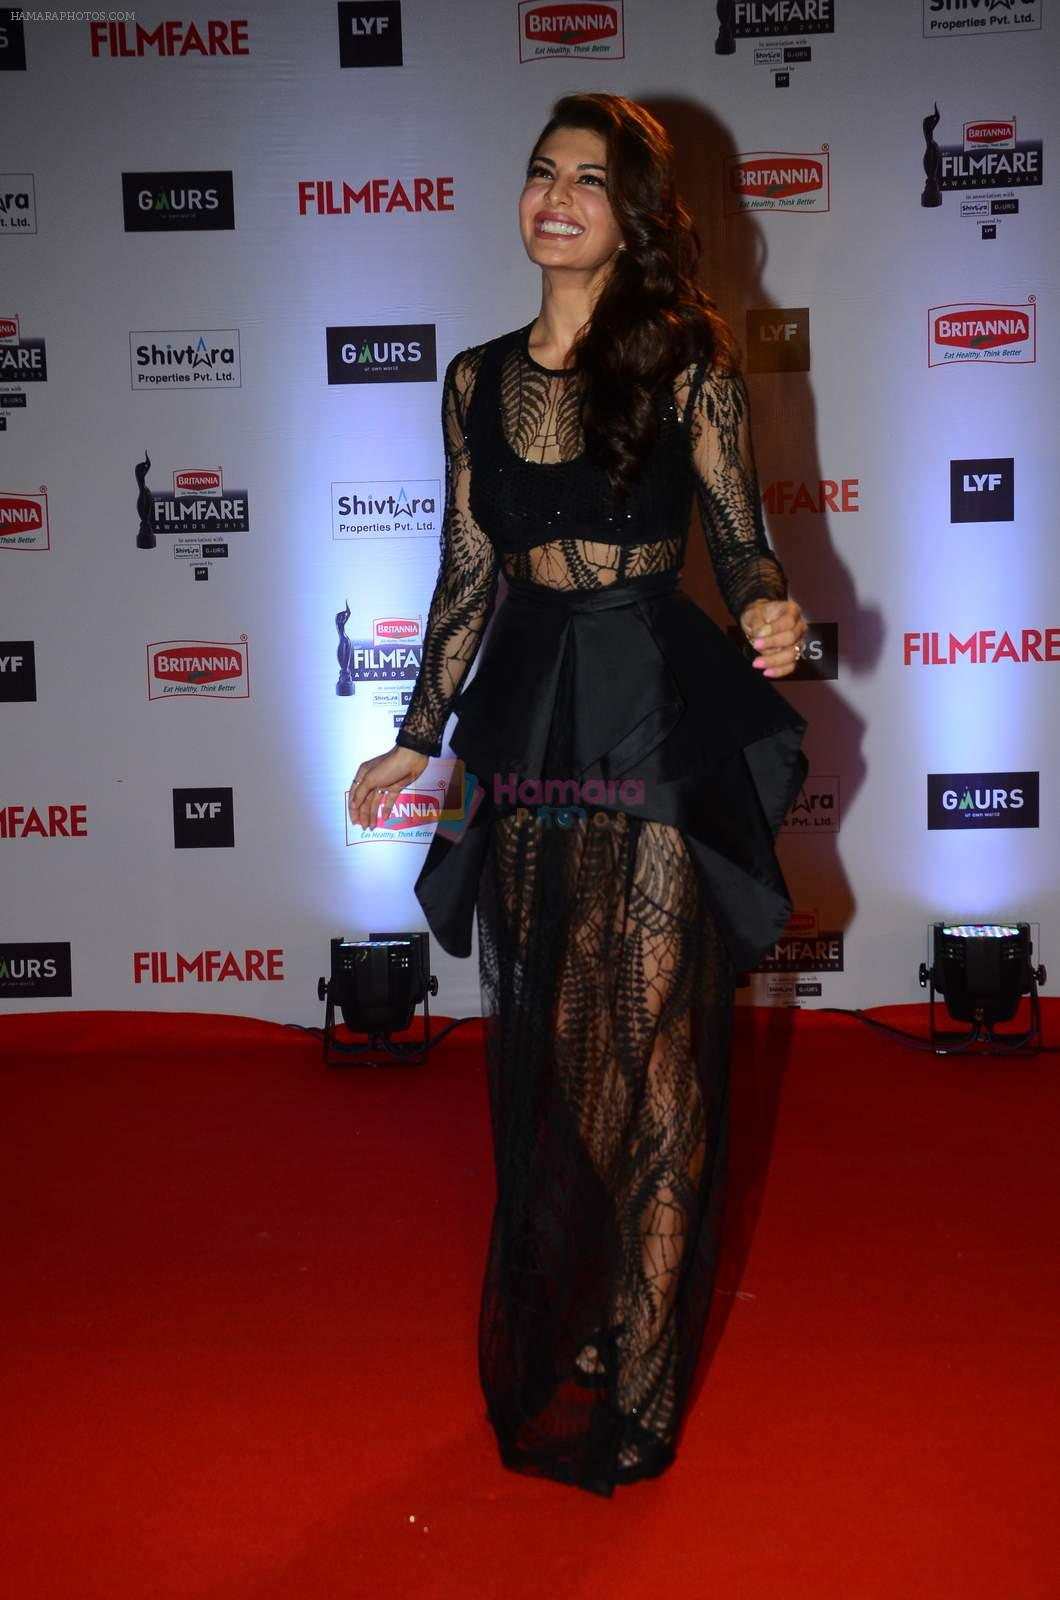 Jacqueline Fernandez at Filmfare Awards 2016 on 15th Jan 2016